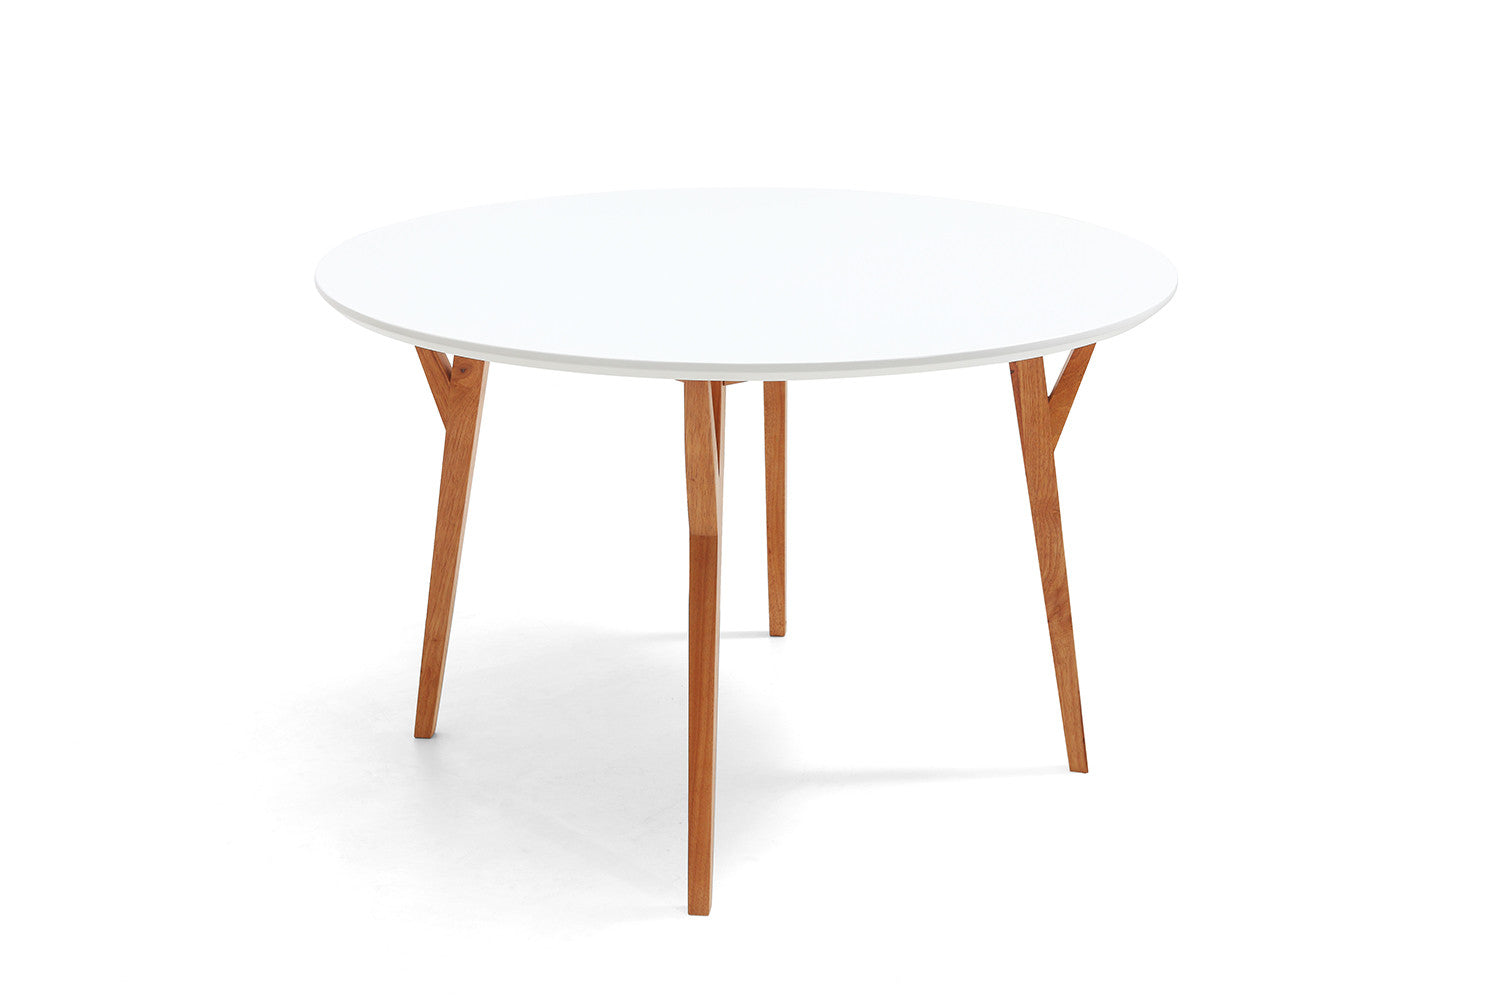 Table de salle manger ronde design scandinave moesa for Table ronde design avec rallonge